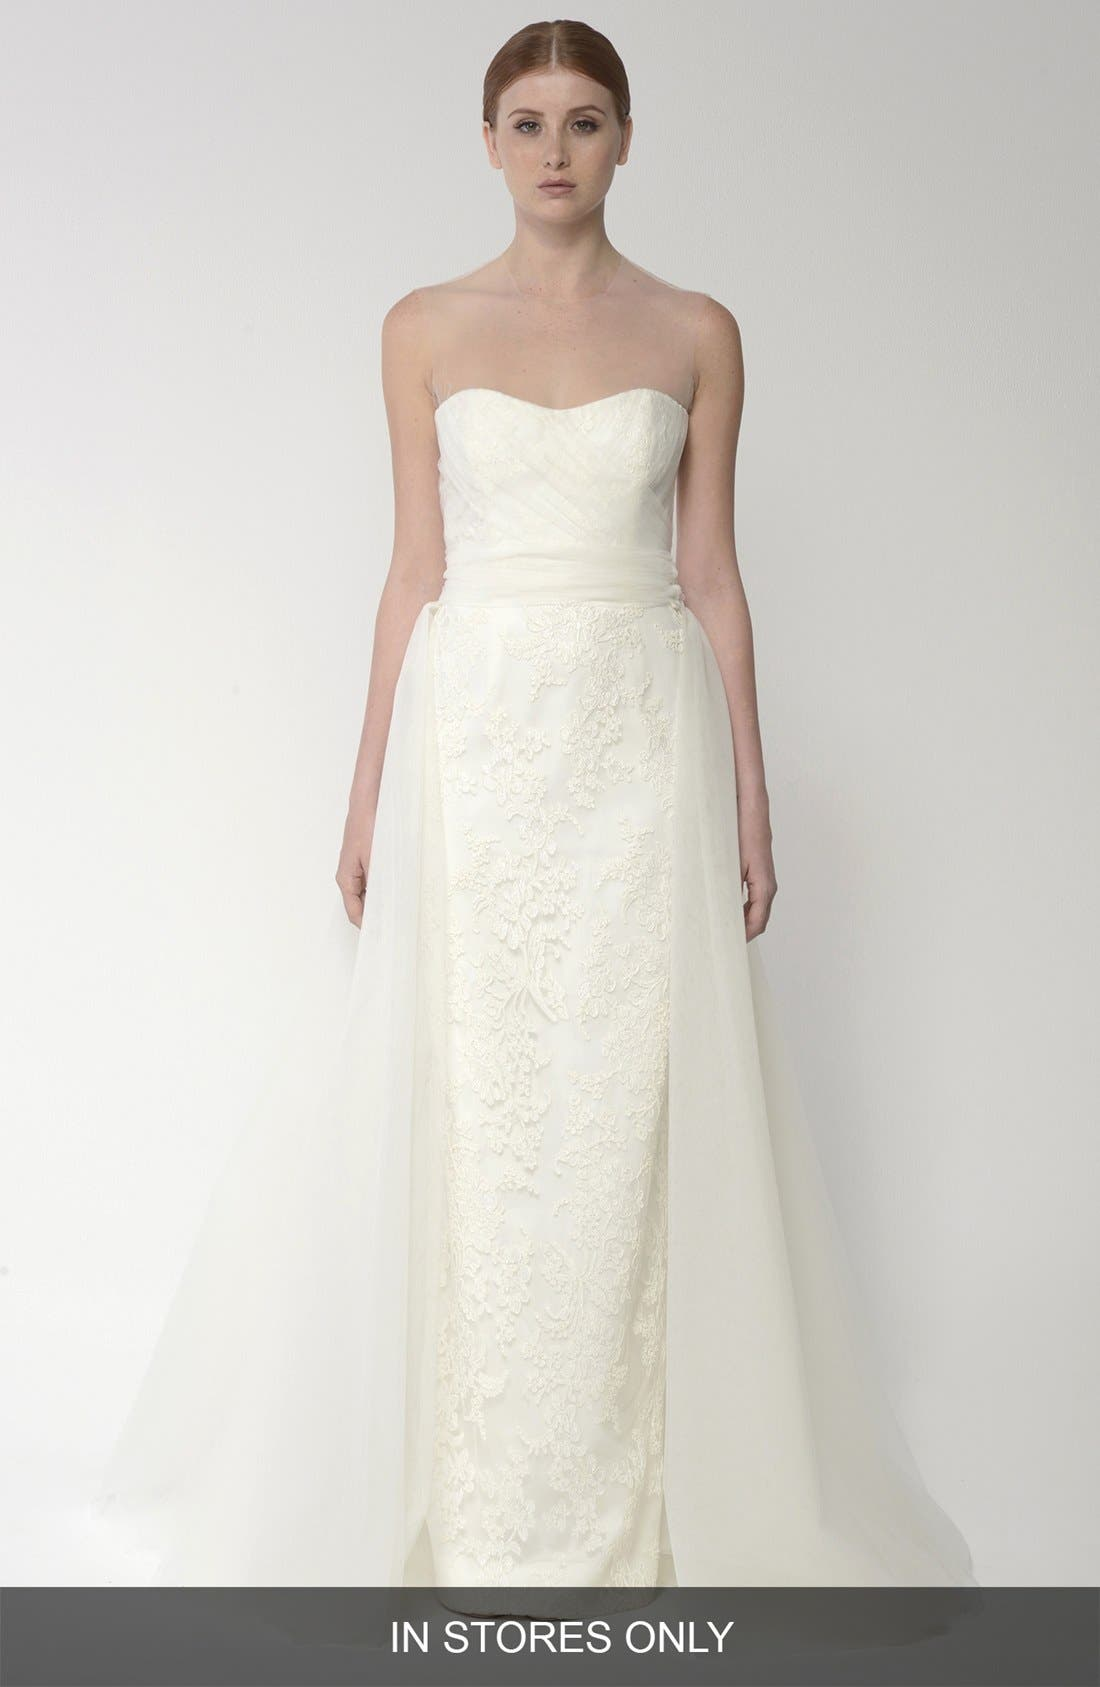 Main Image - BLISS Monique Lhuillier Embroidered Lace Gown with Detachable Tulle Overskirt (In Stores Only)